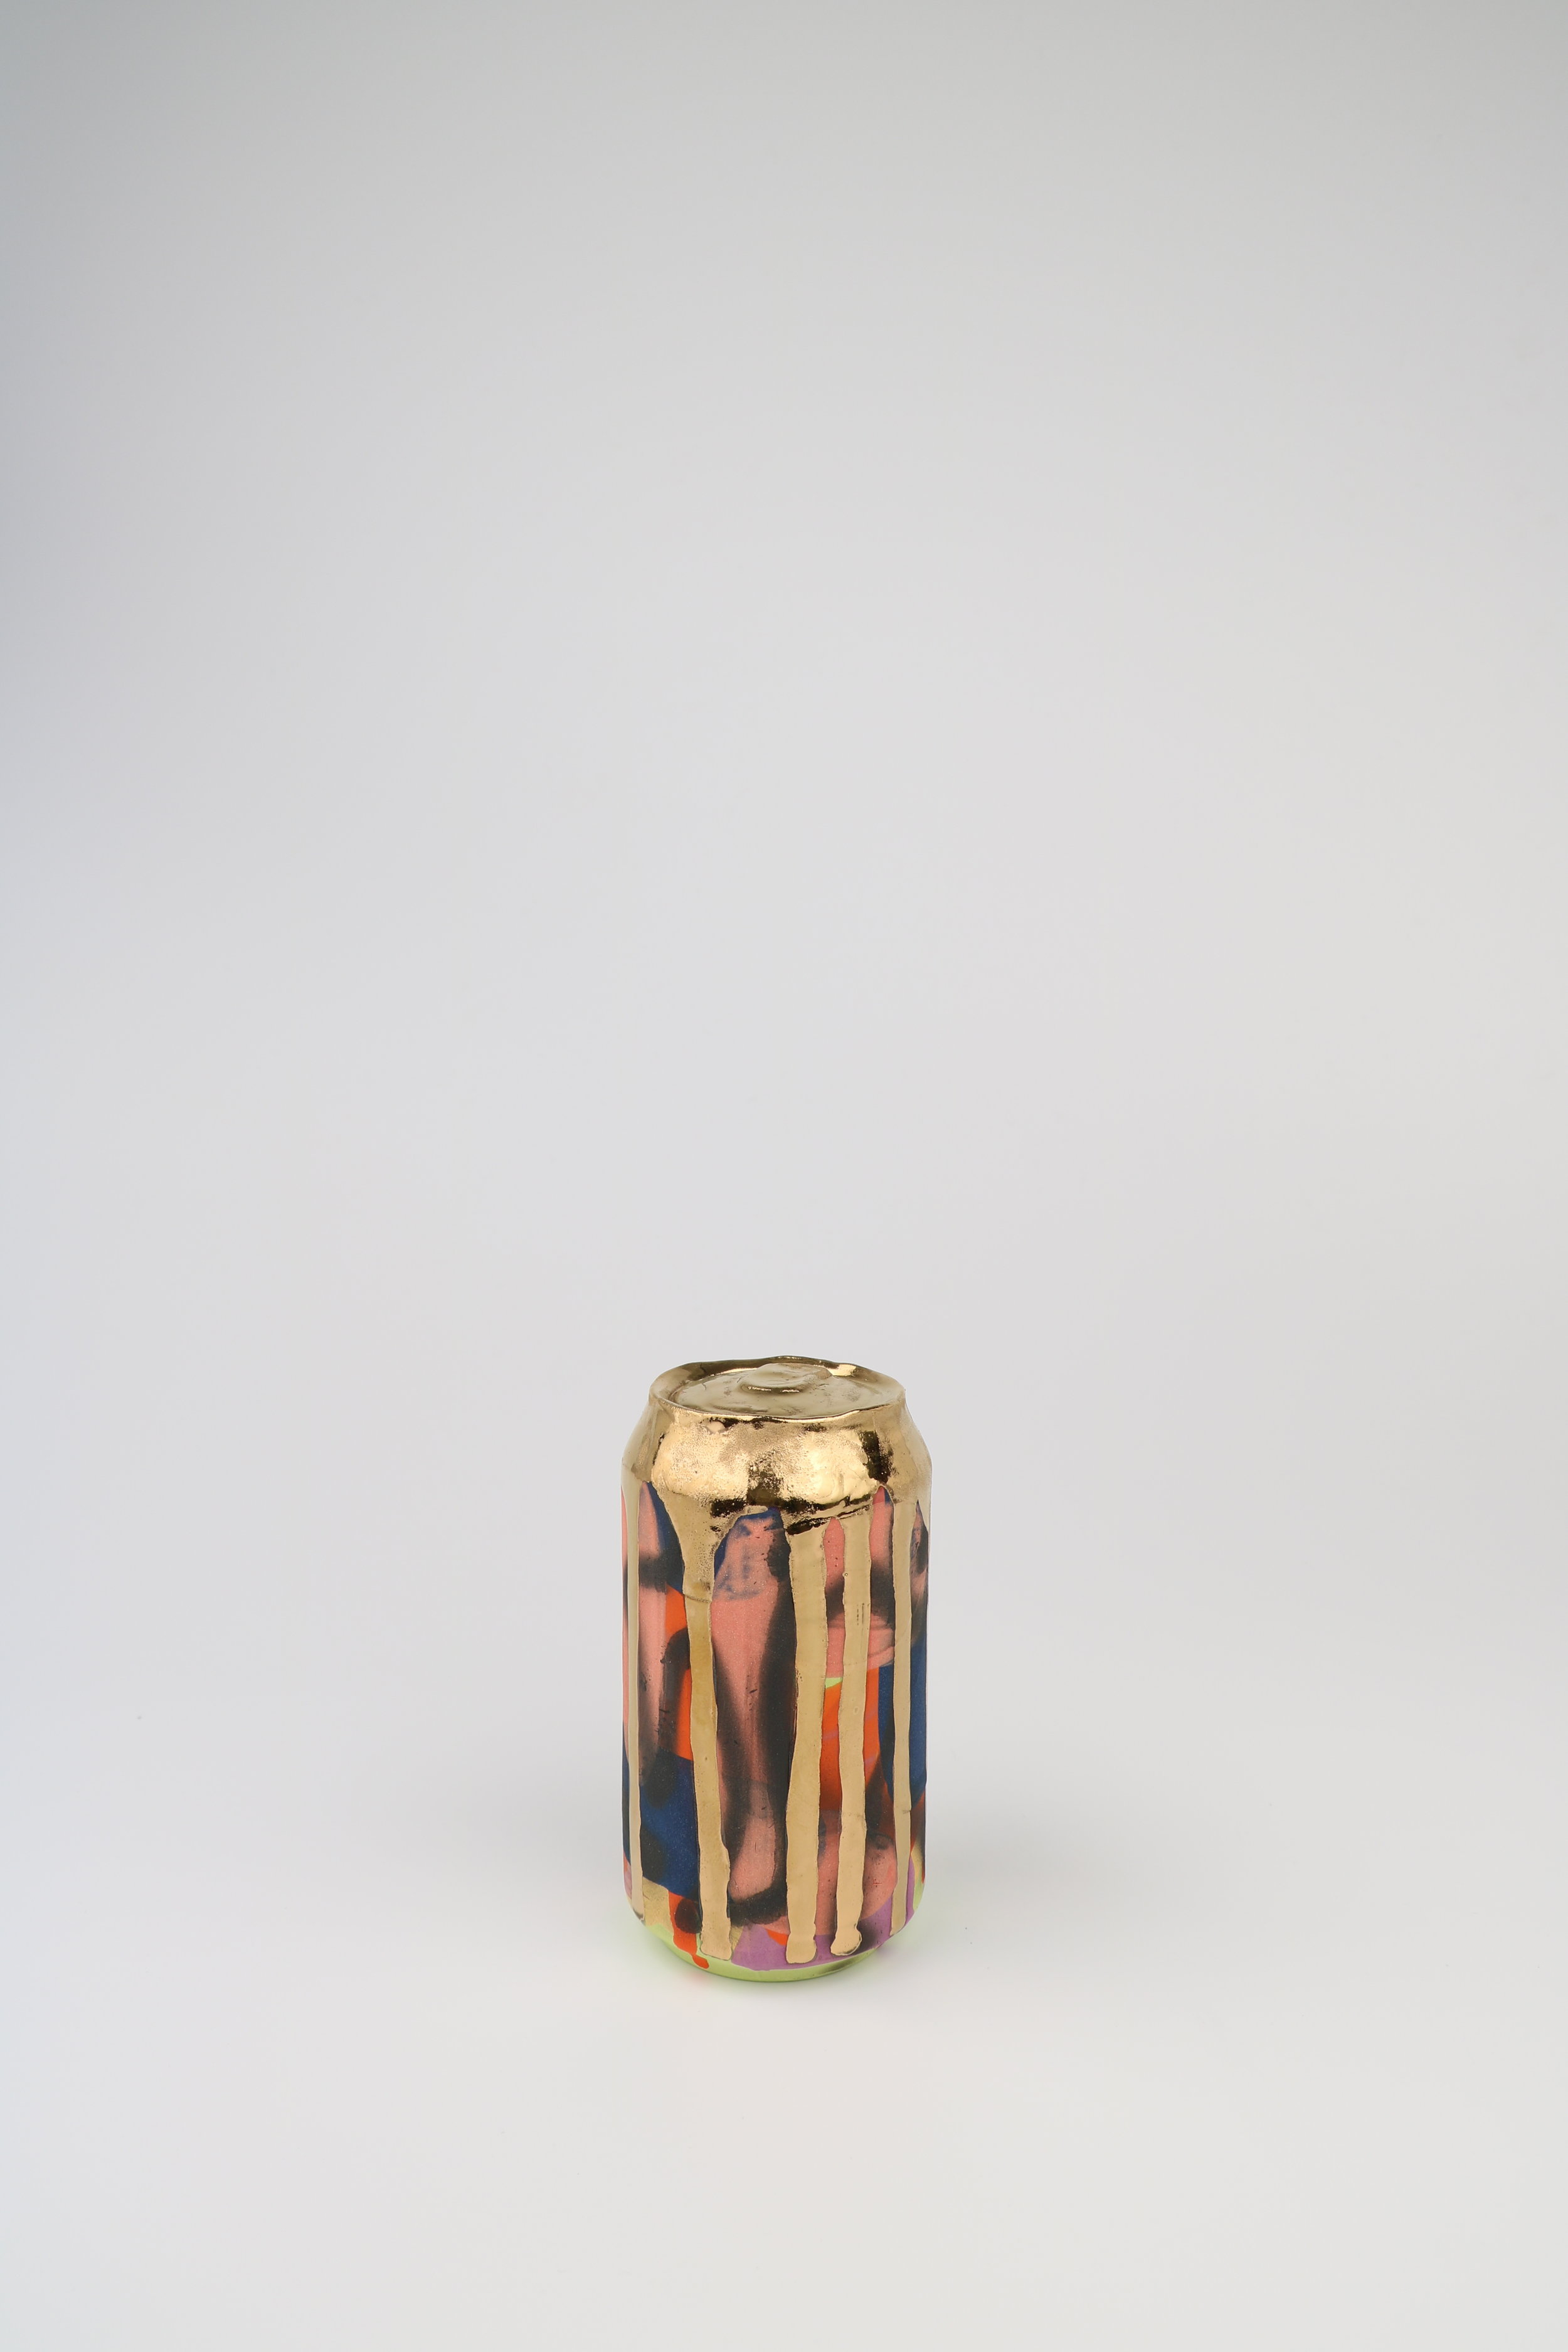 Cindy Lisica Gallery - Jeff Schwarz - _Beer Can_25_ - ceramic and 24kt gold lustre glaze - 6 x 3 x 3 inches - 2017 - $350.JPG